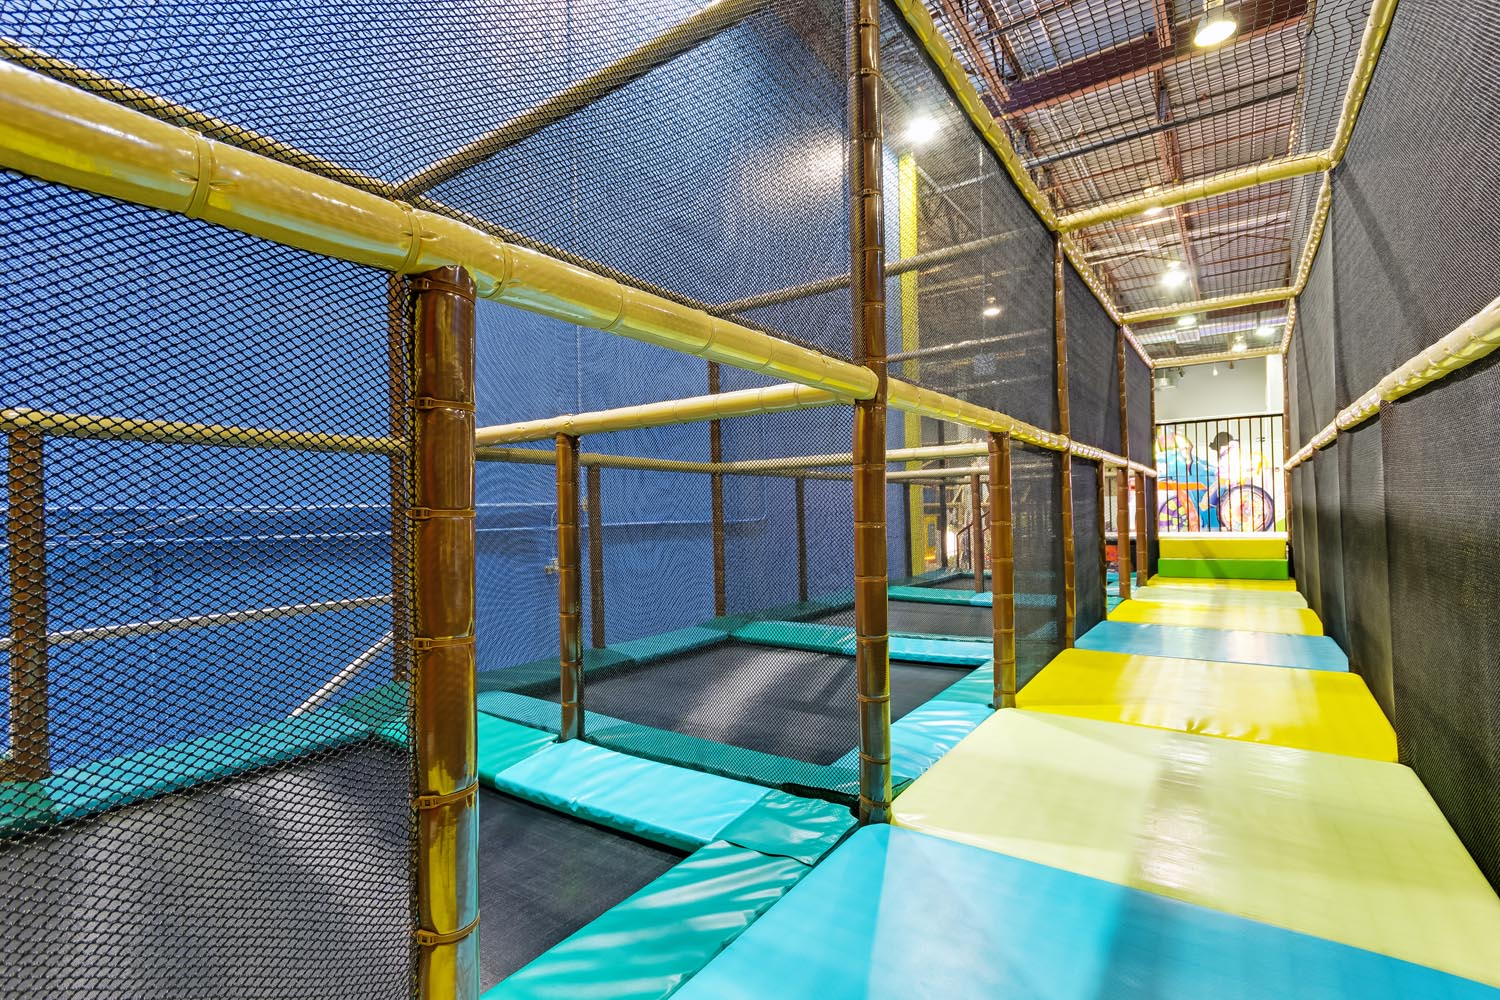 15,000 sqft of Family Fun at Playtopia Indoor Playground